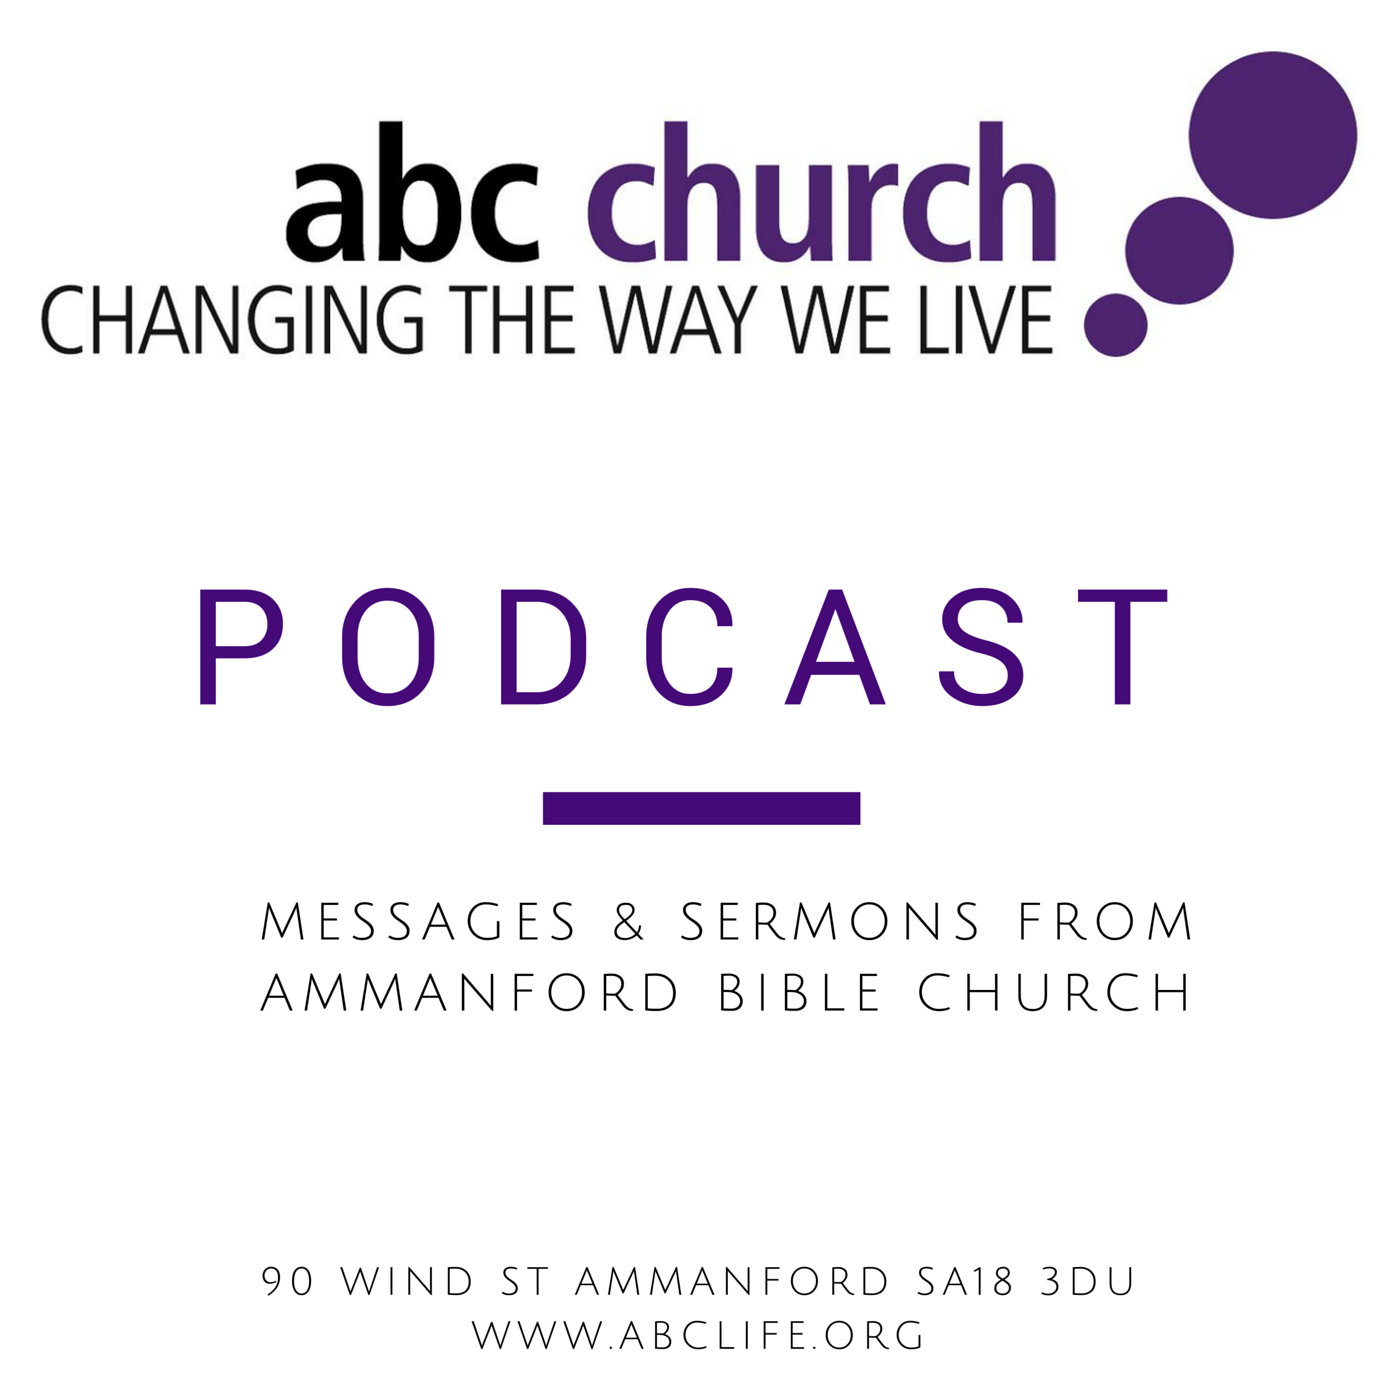 Ammanford Bible Church (ABC) Podcast